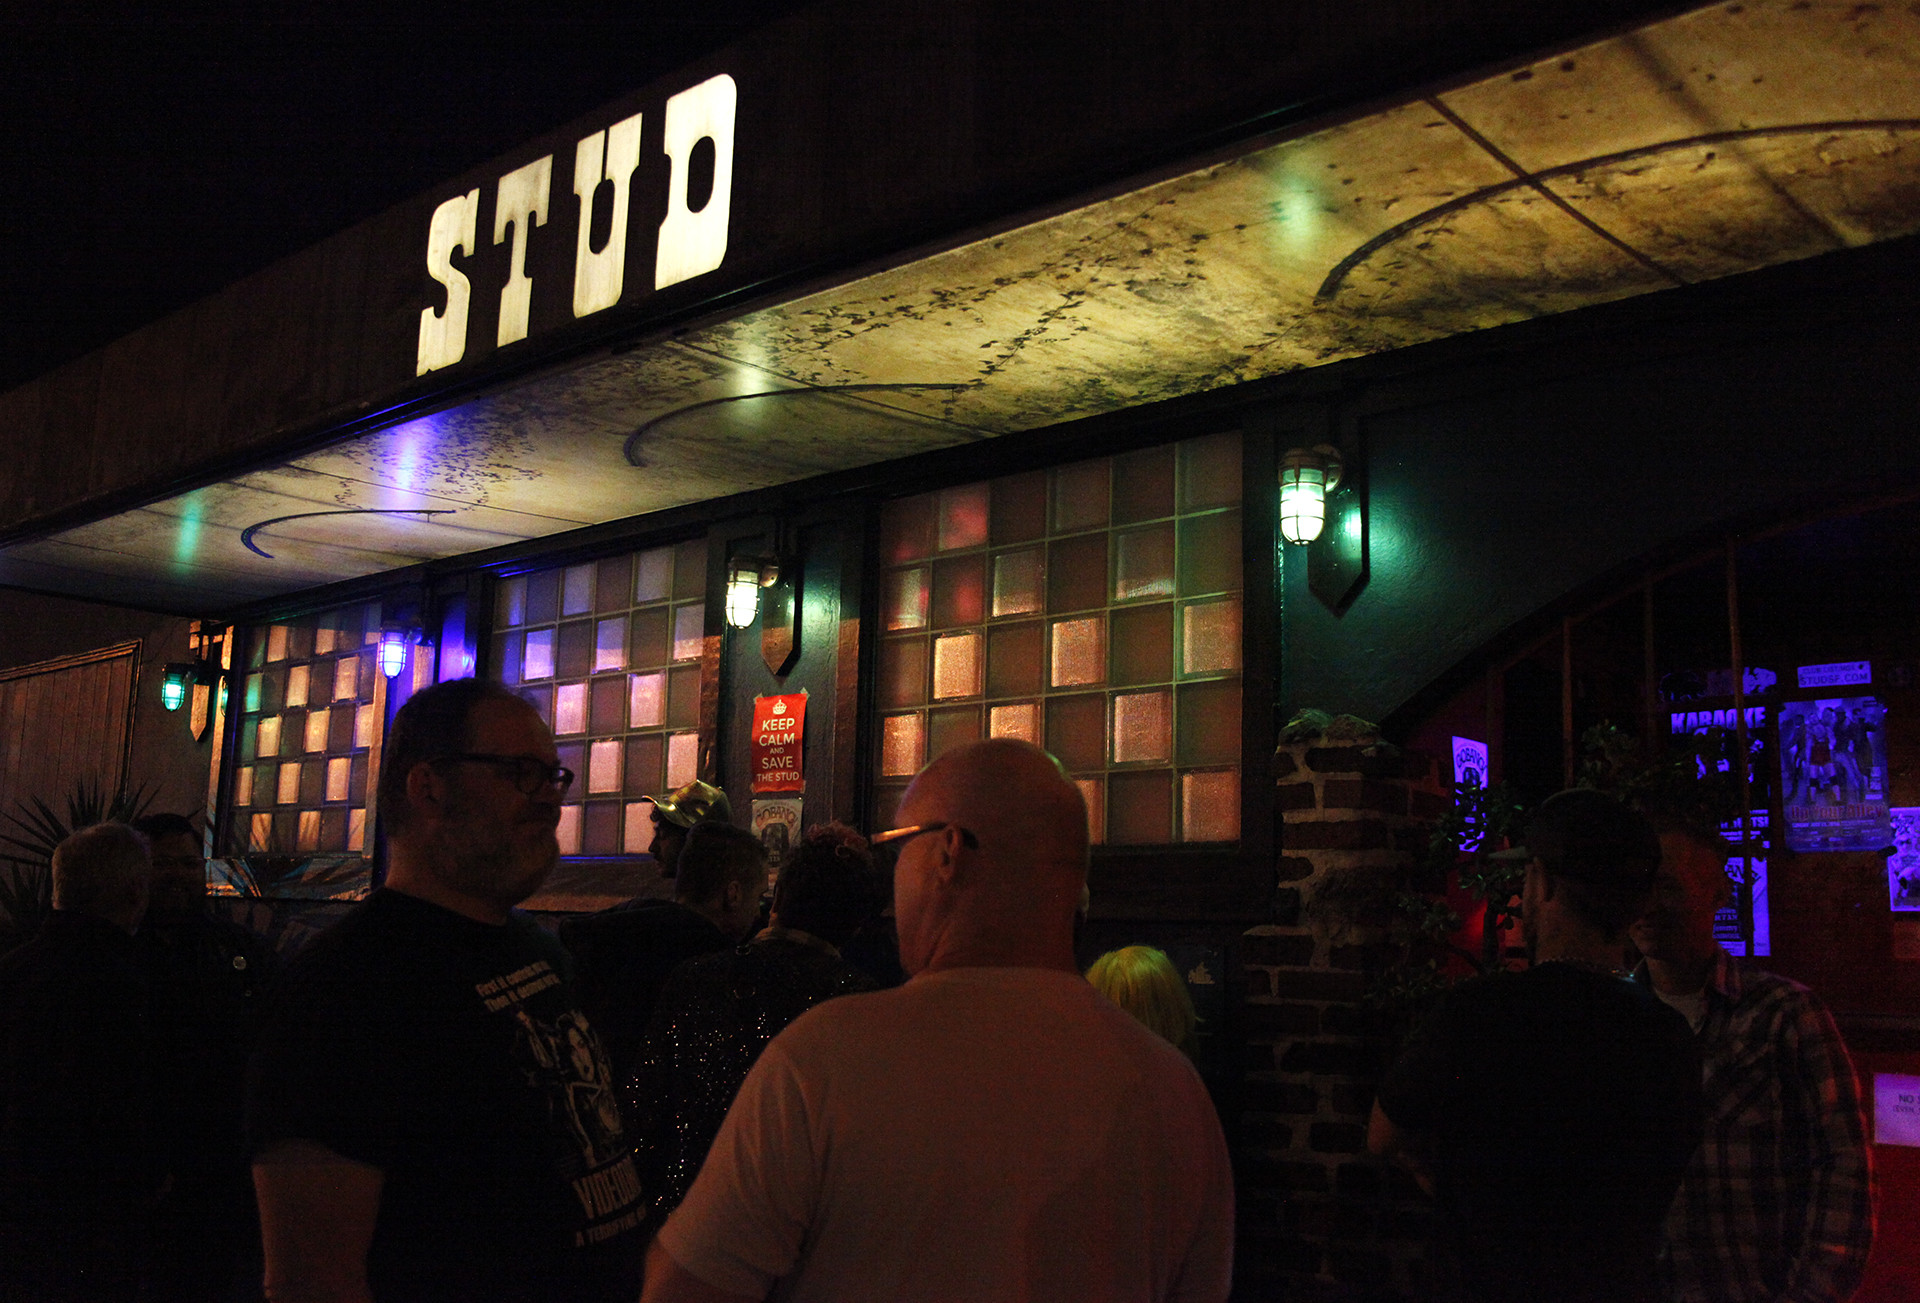 The Stud Bar, on Harrison and 9th Streets. Founded in 1966, it's one of San Francisco's oldest gay bars.